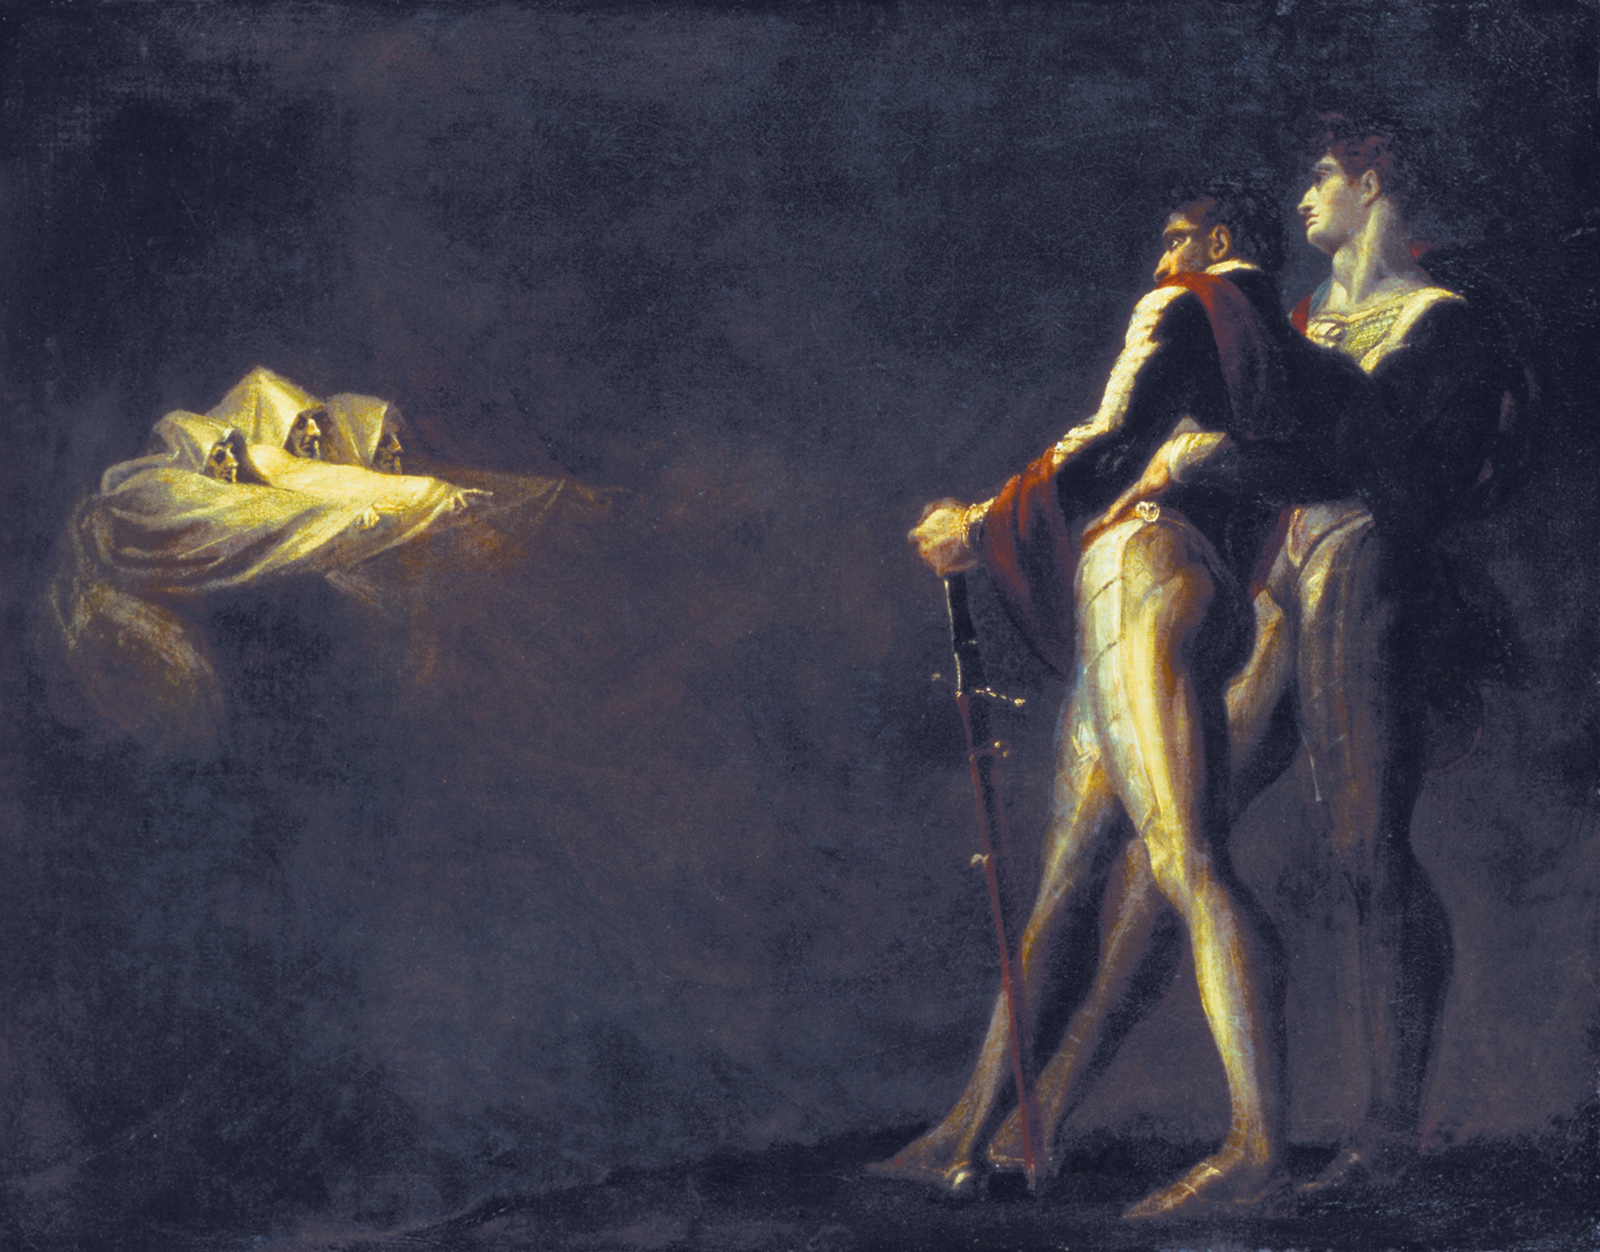 'The Three Witches Appearing to Macbeth and Banquo'; xpainting by Henry Fuseli, circa 1800–1810